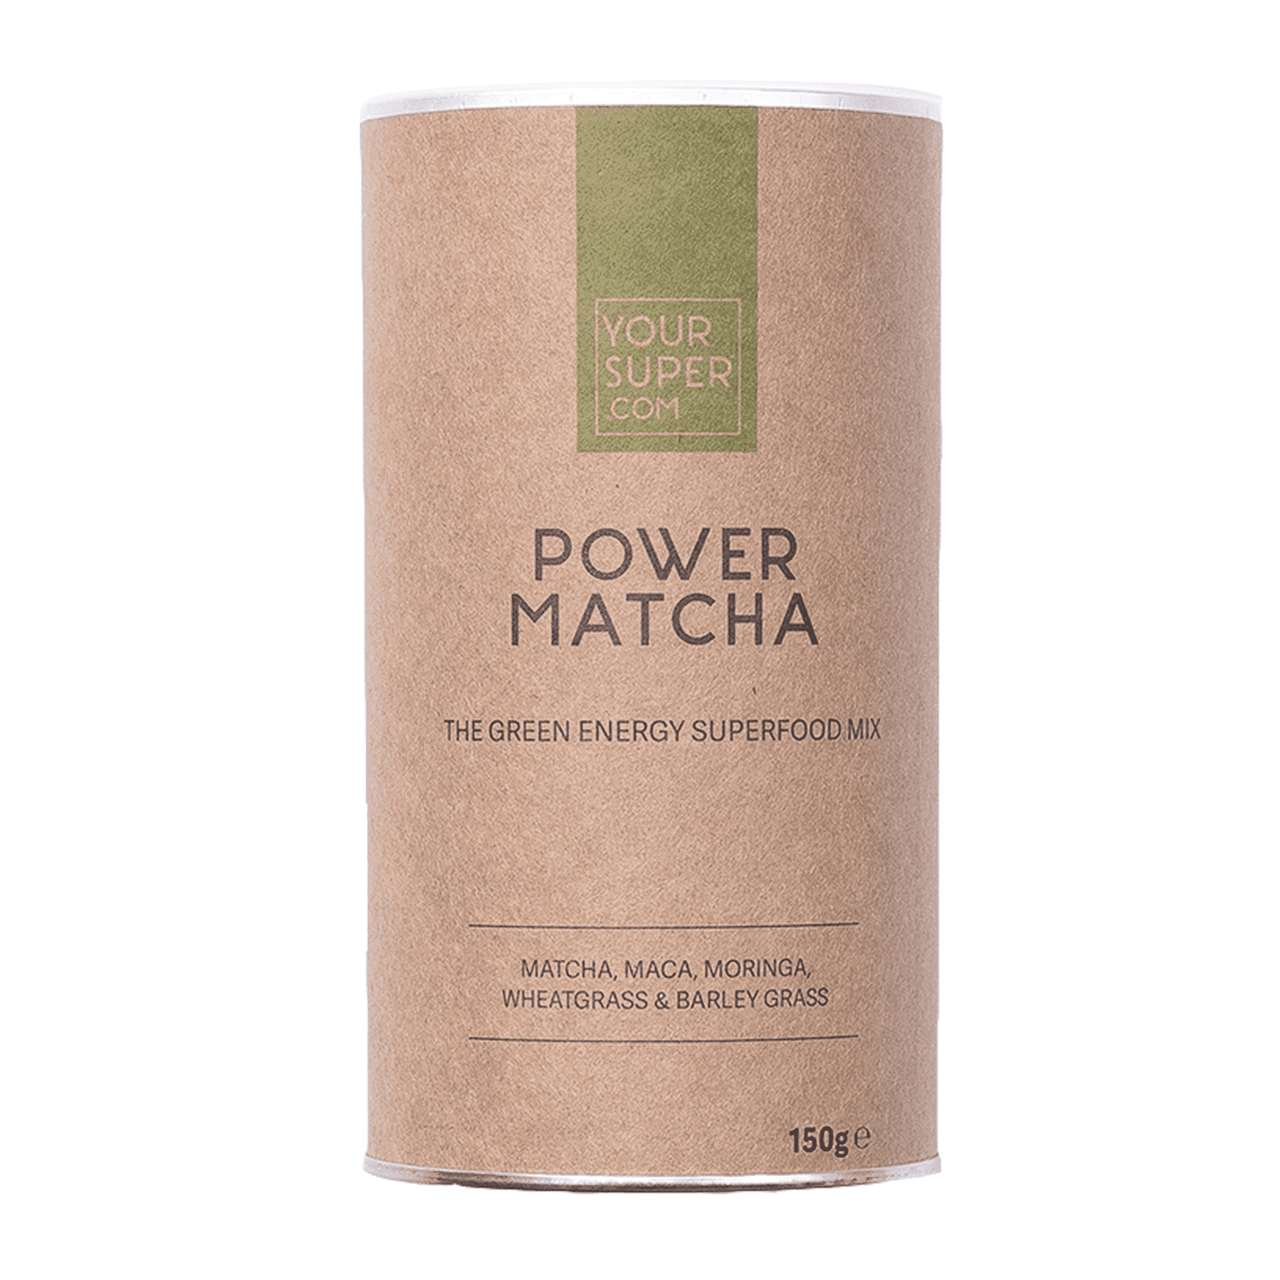 Power Matcha - Your Superfoods